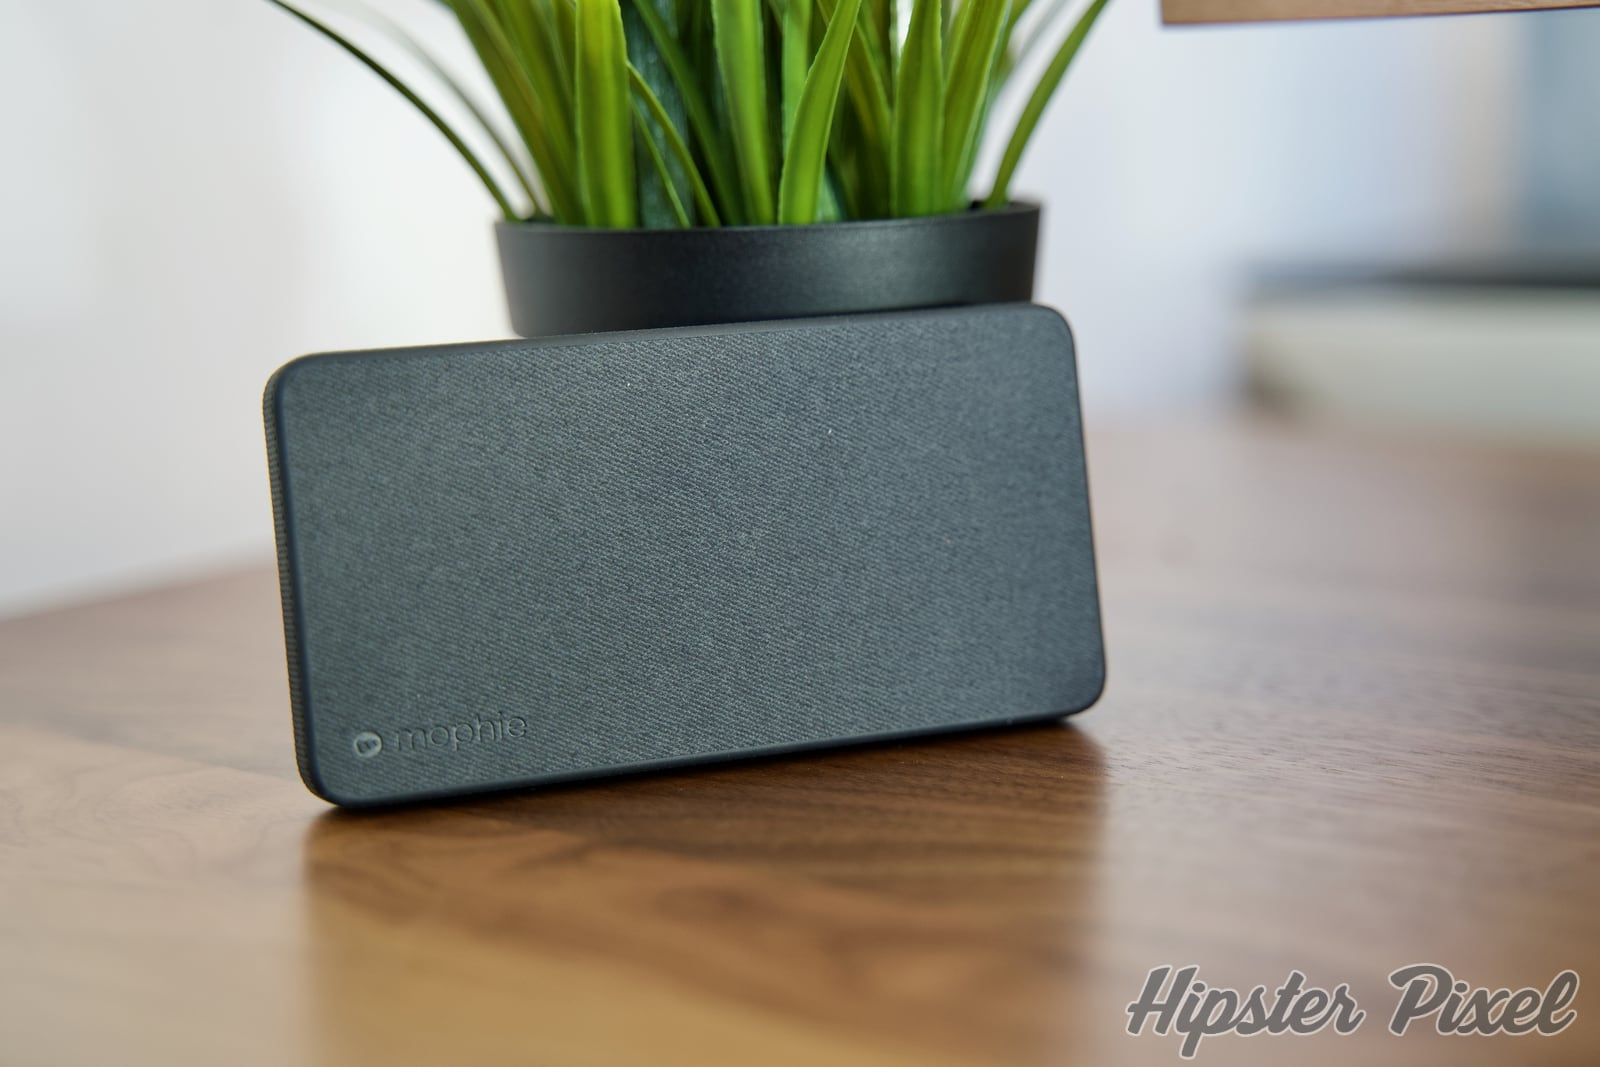 Mophie Powerstation With PD and Lightning Input Battery Bank [Review]